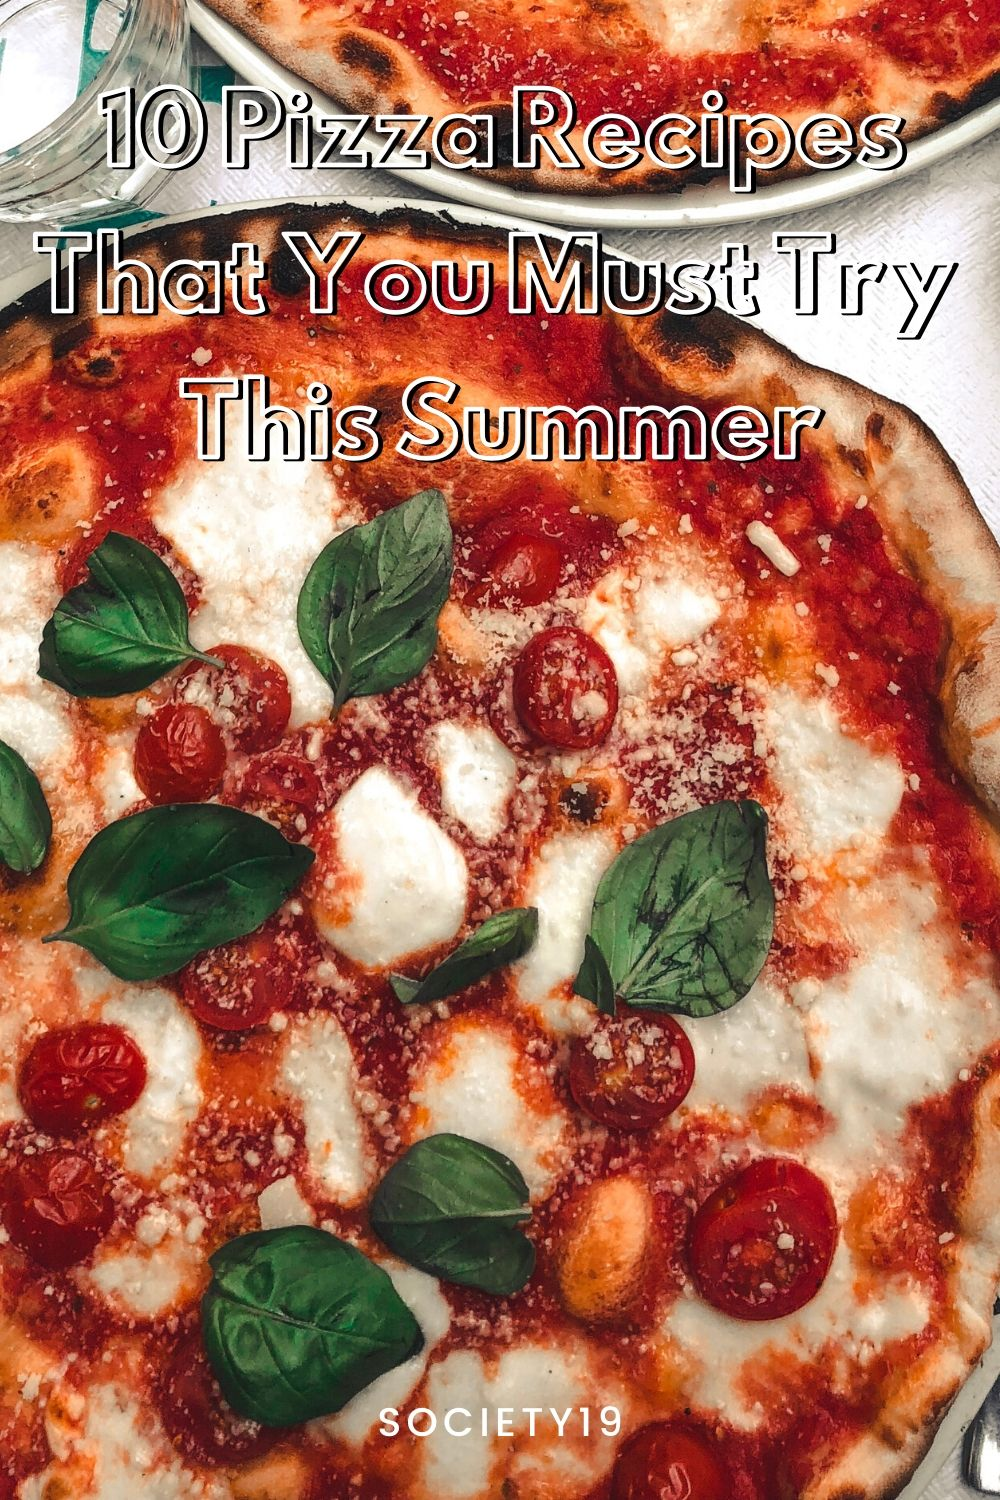 pizza recipes, 10 Pizza Recipes That You Must Try This Summer